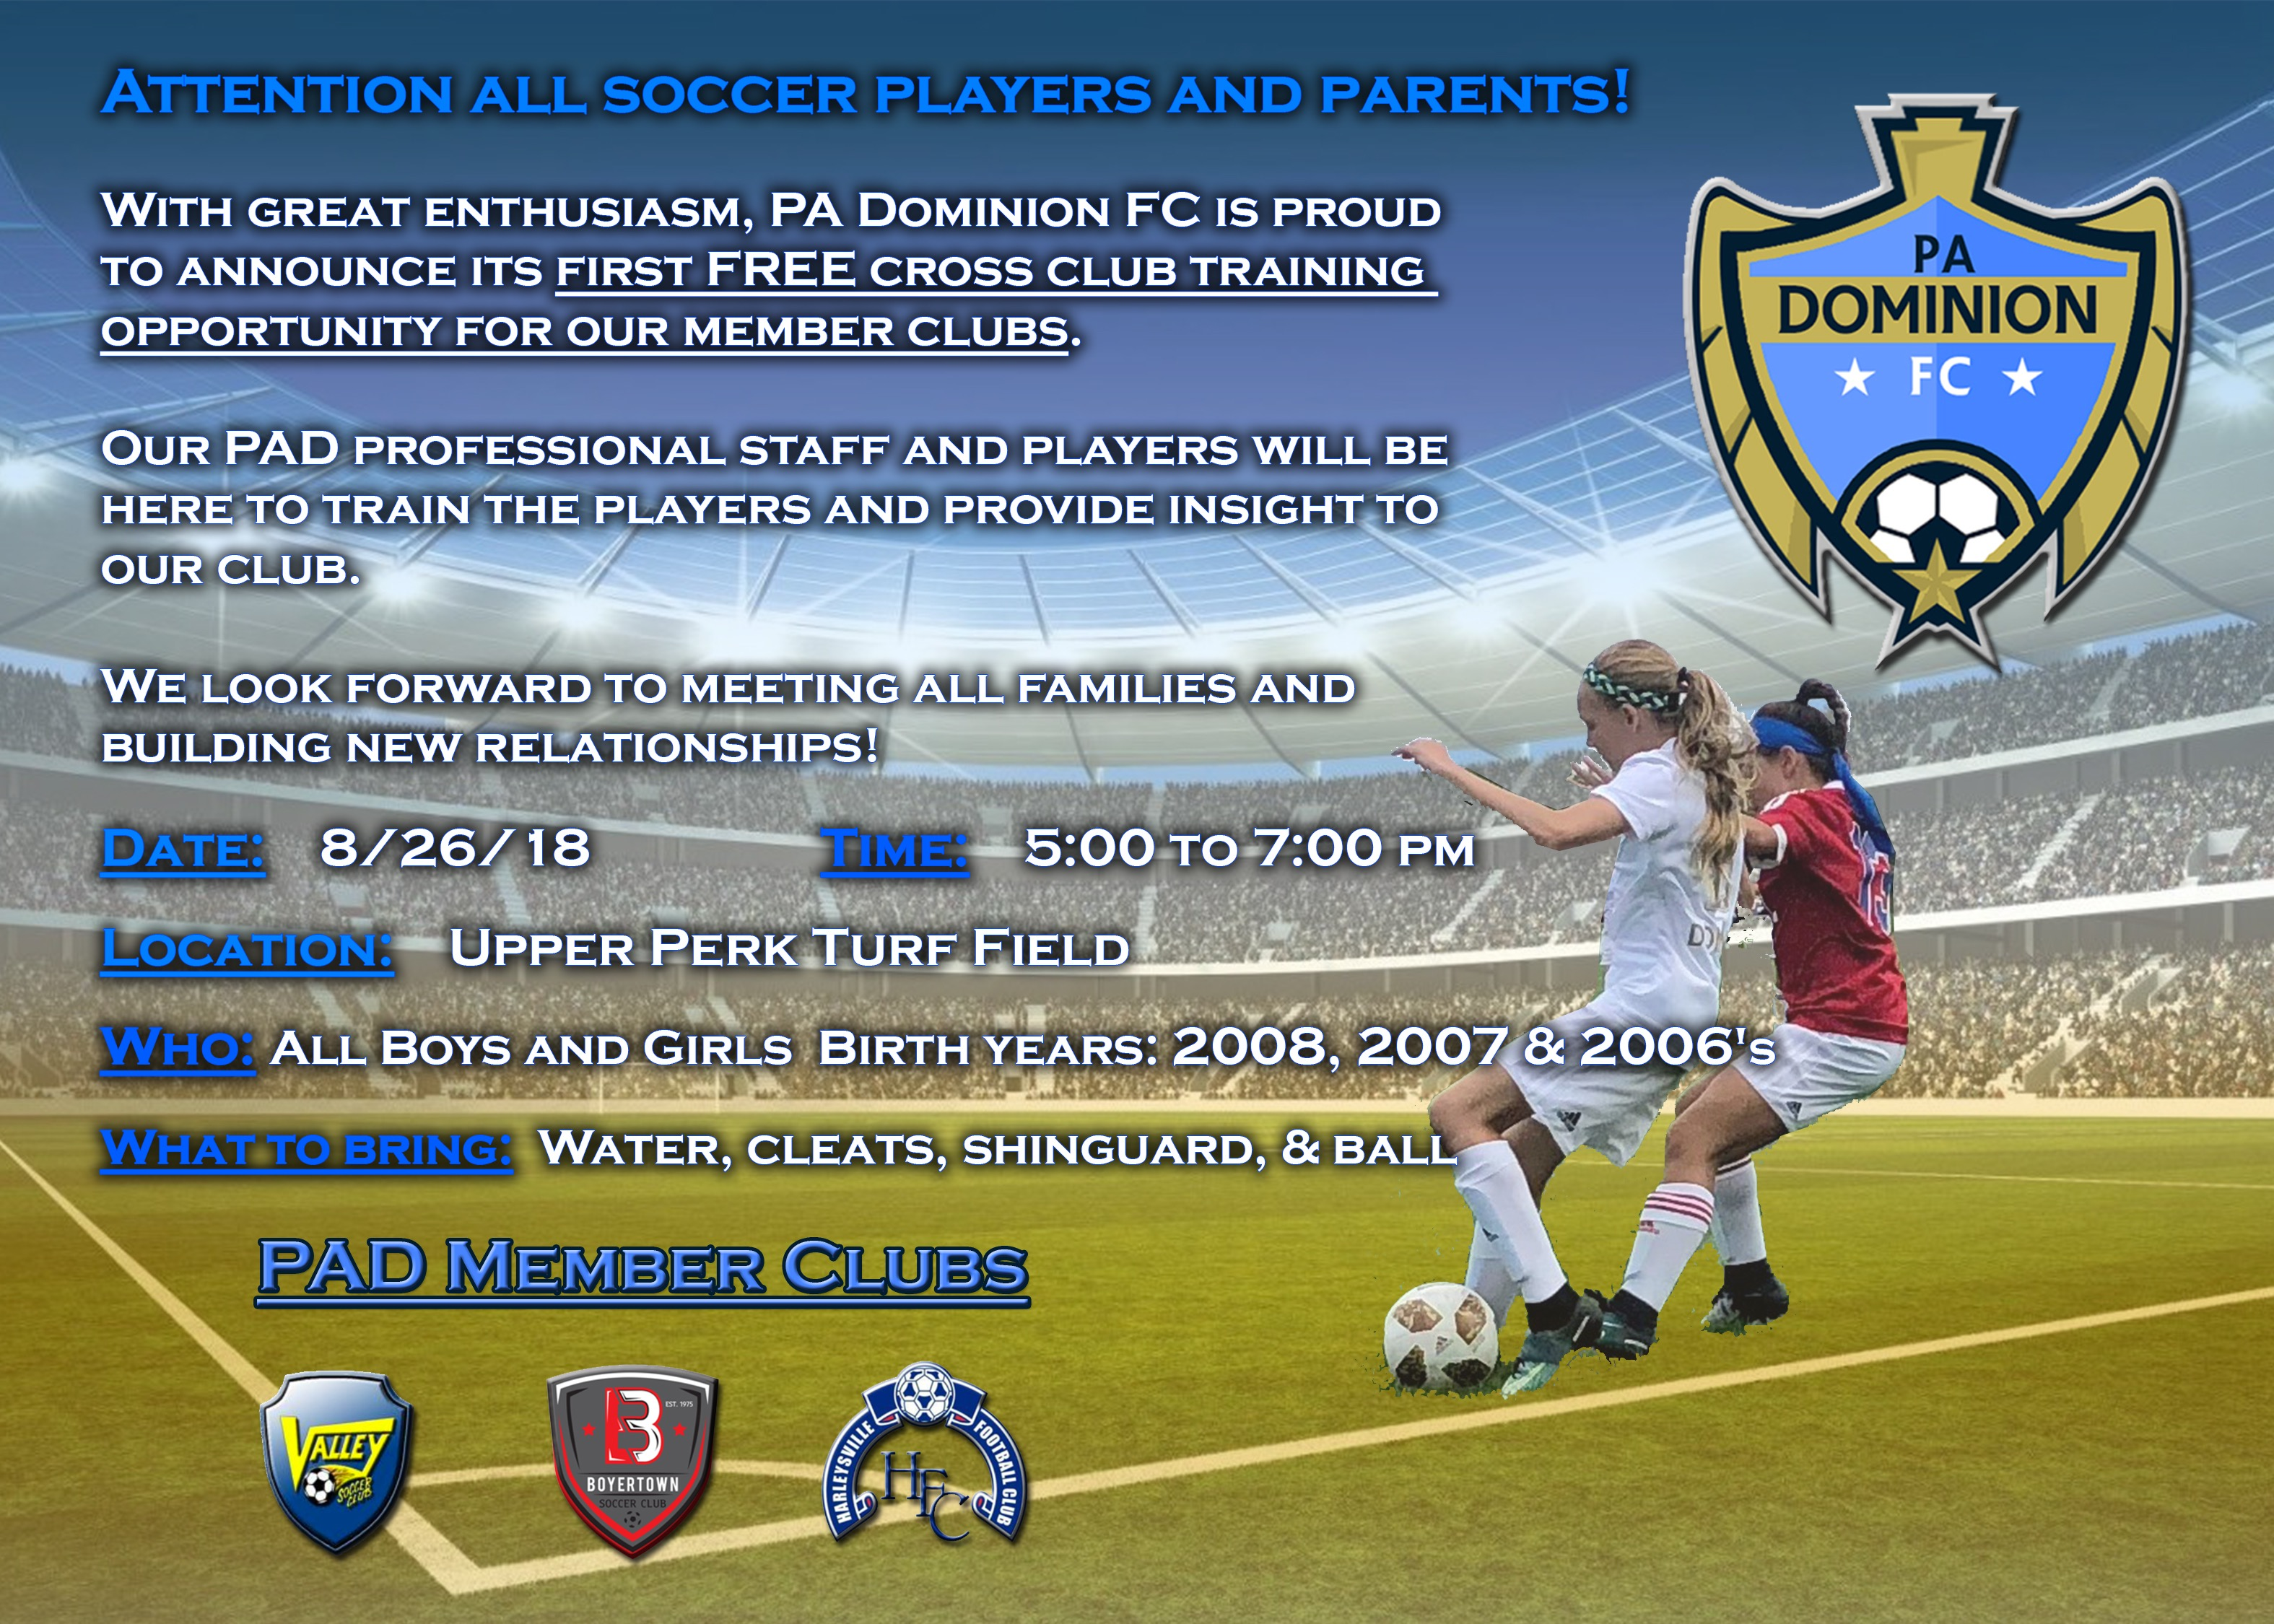 A Dominion FC 2018 FREE Training Day